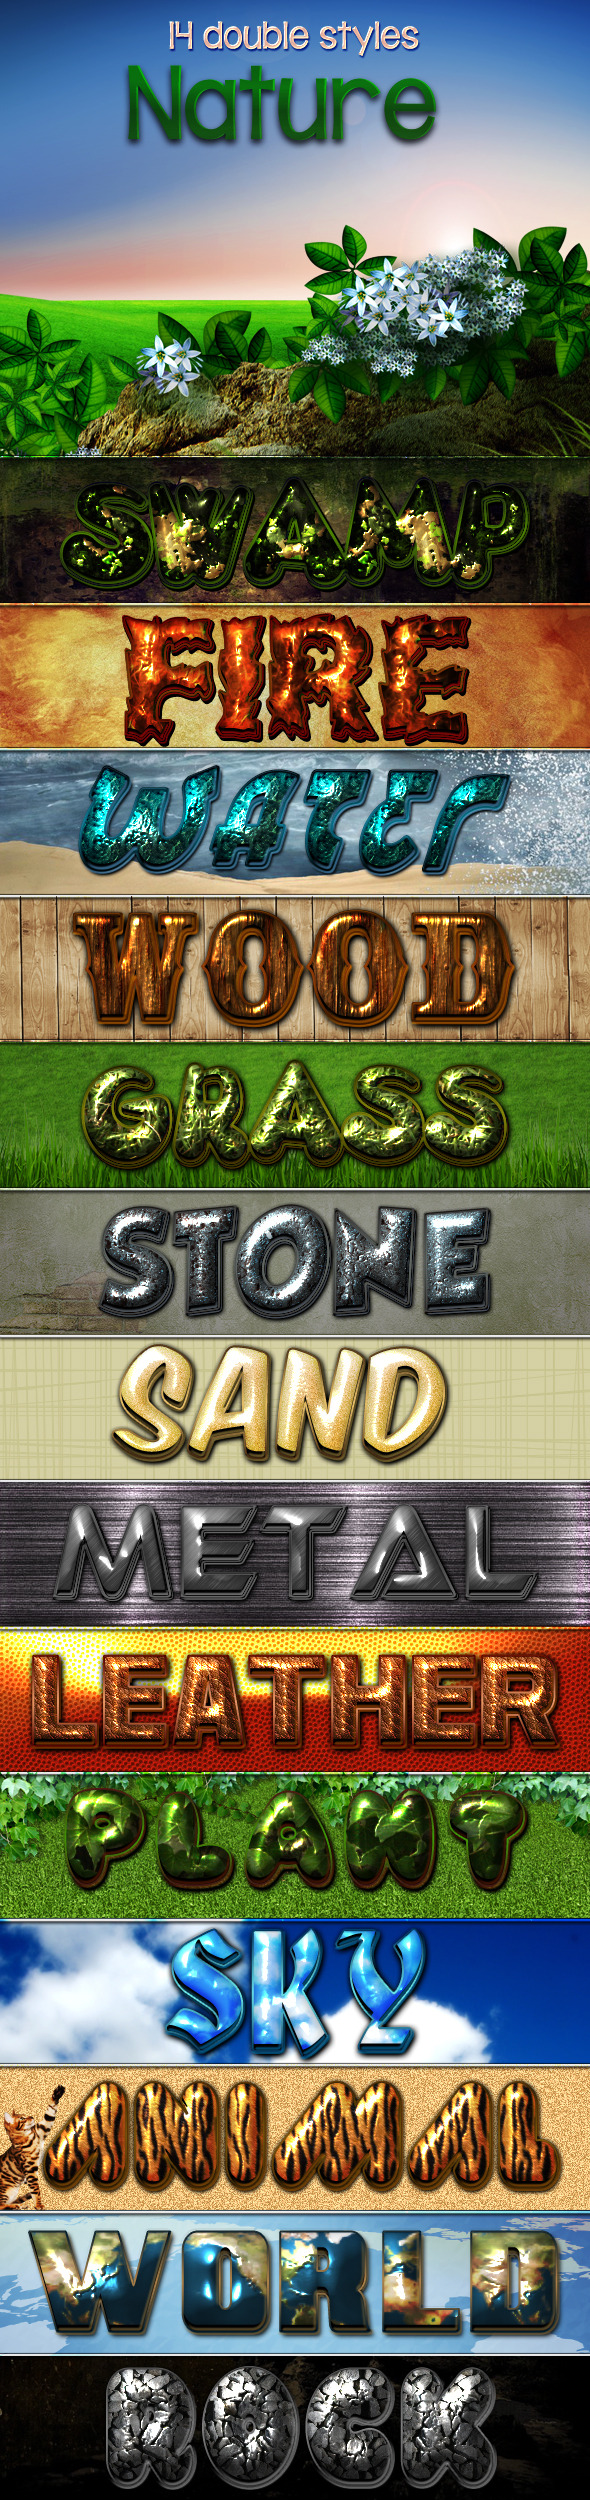 Nature Styles - Text Effects Styles